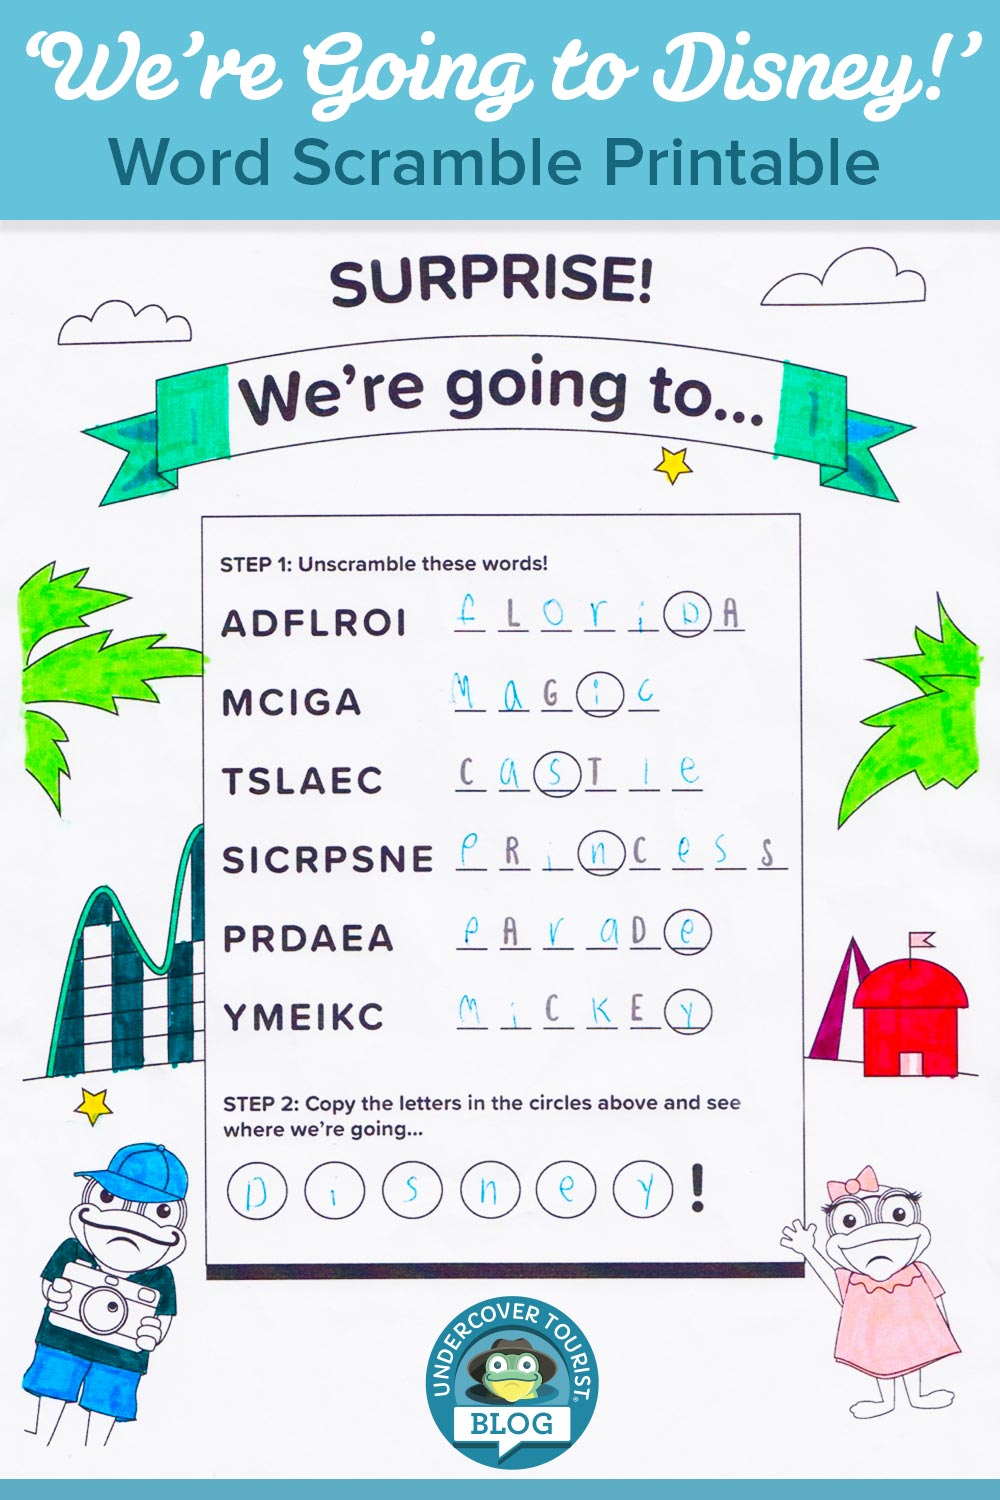 We re going to. Awesome clipart surprise word